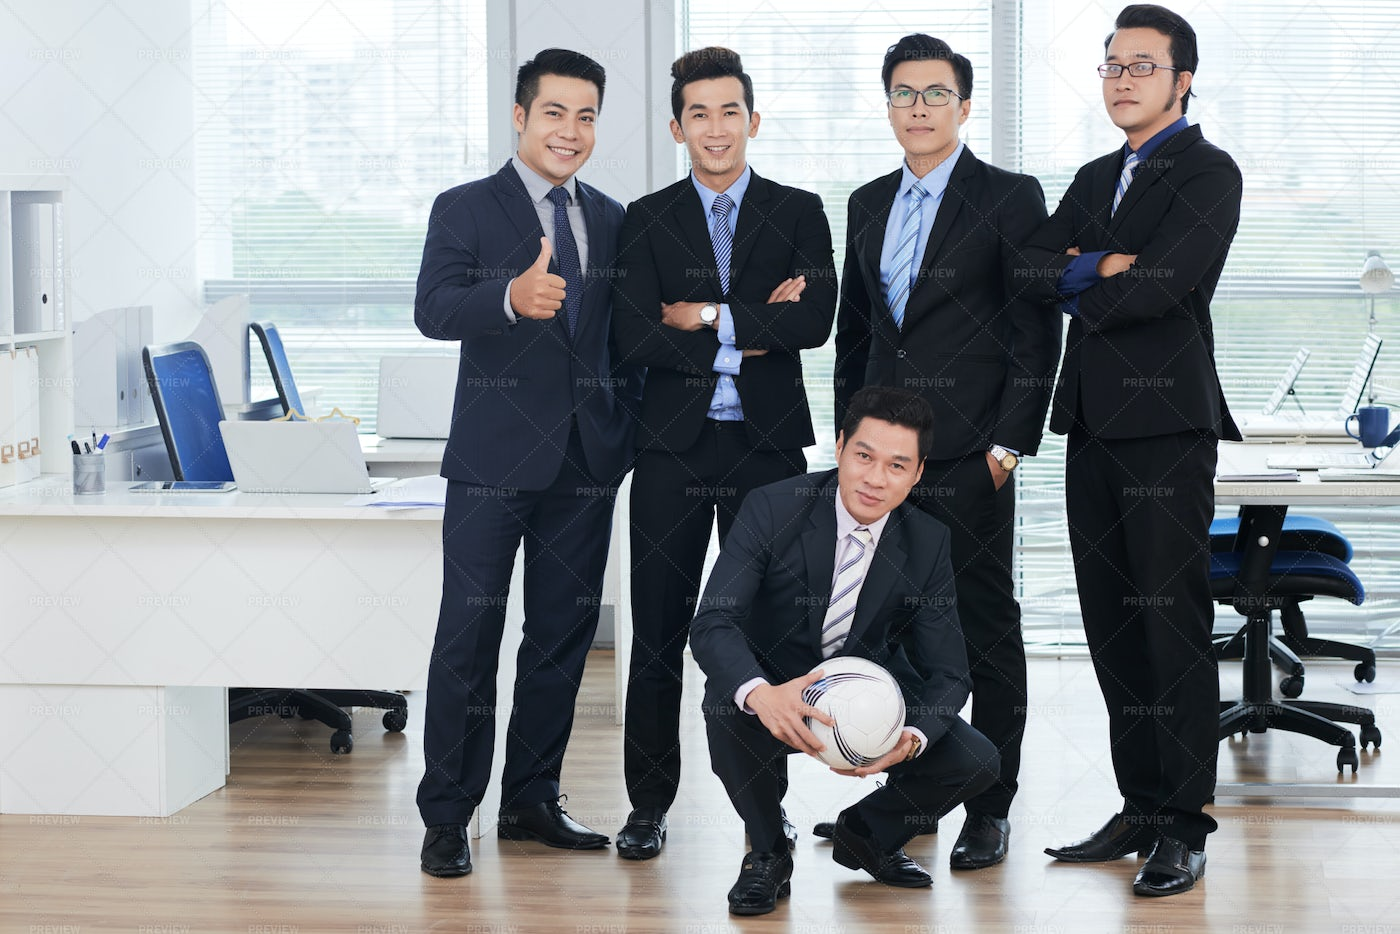 Football Fans At Workplace: Stock Photos